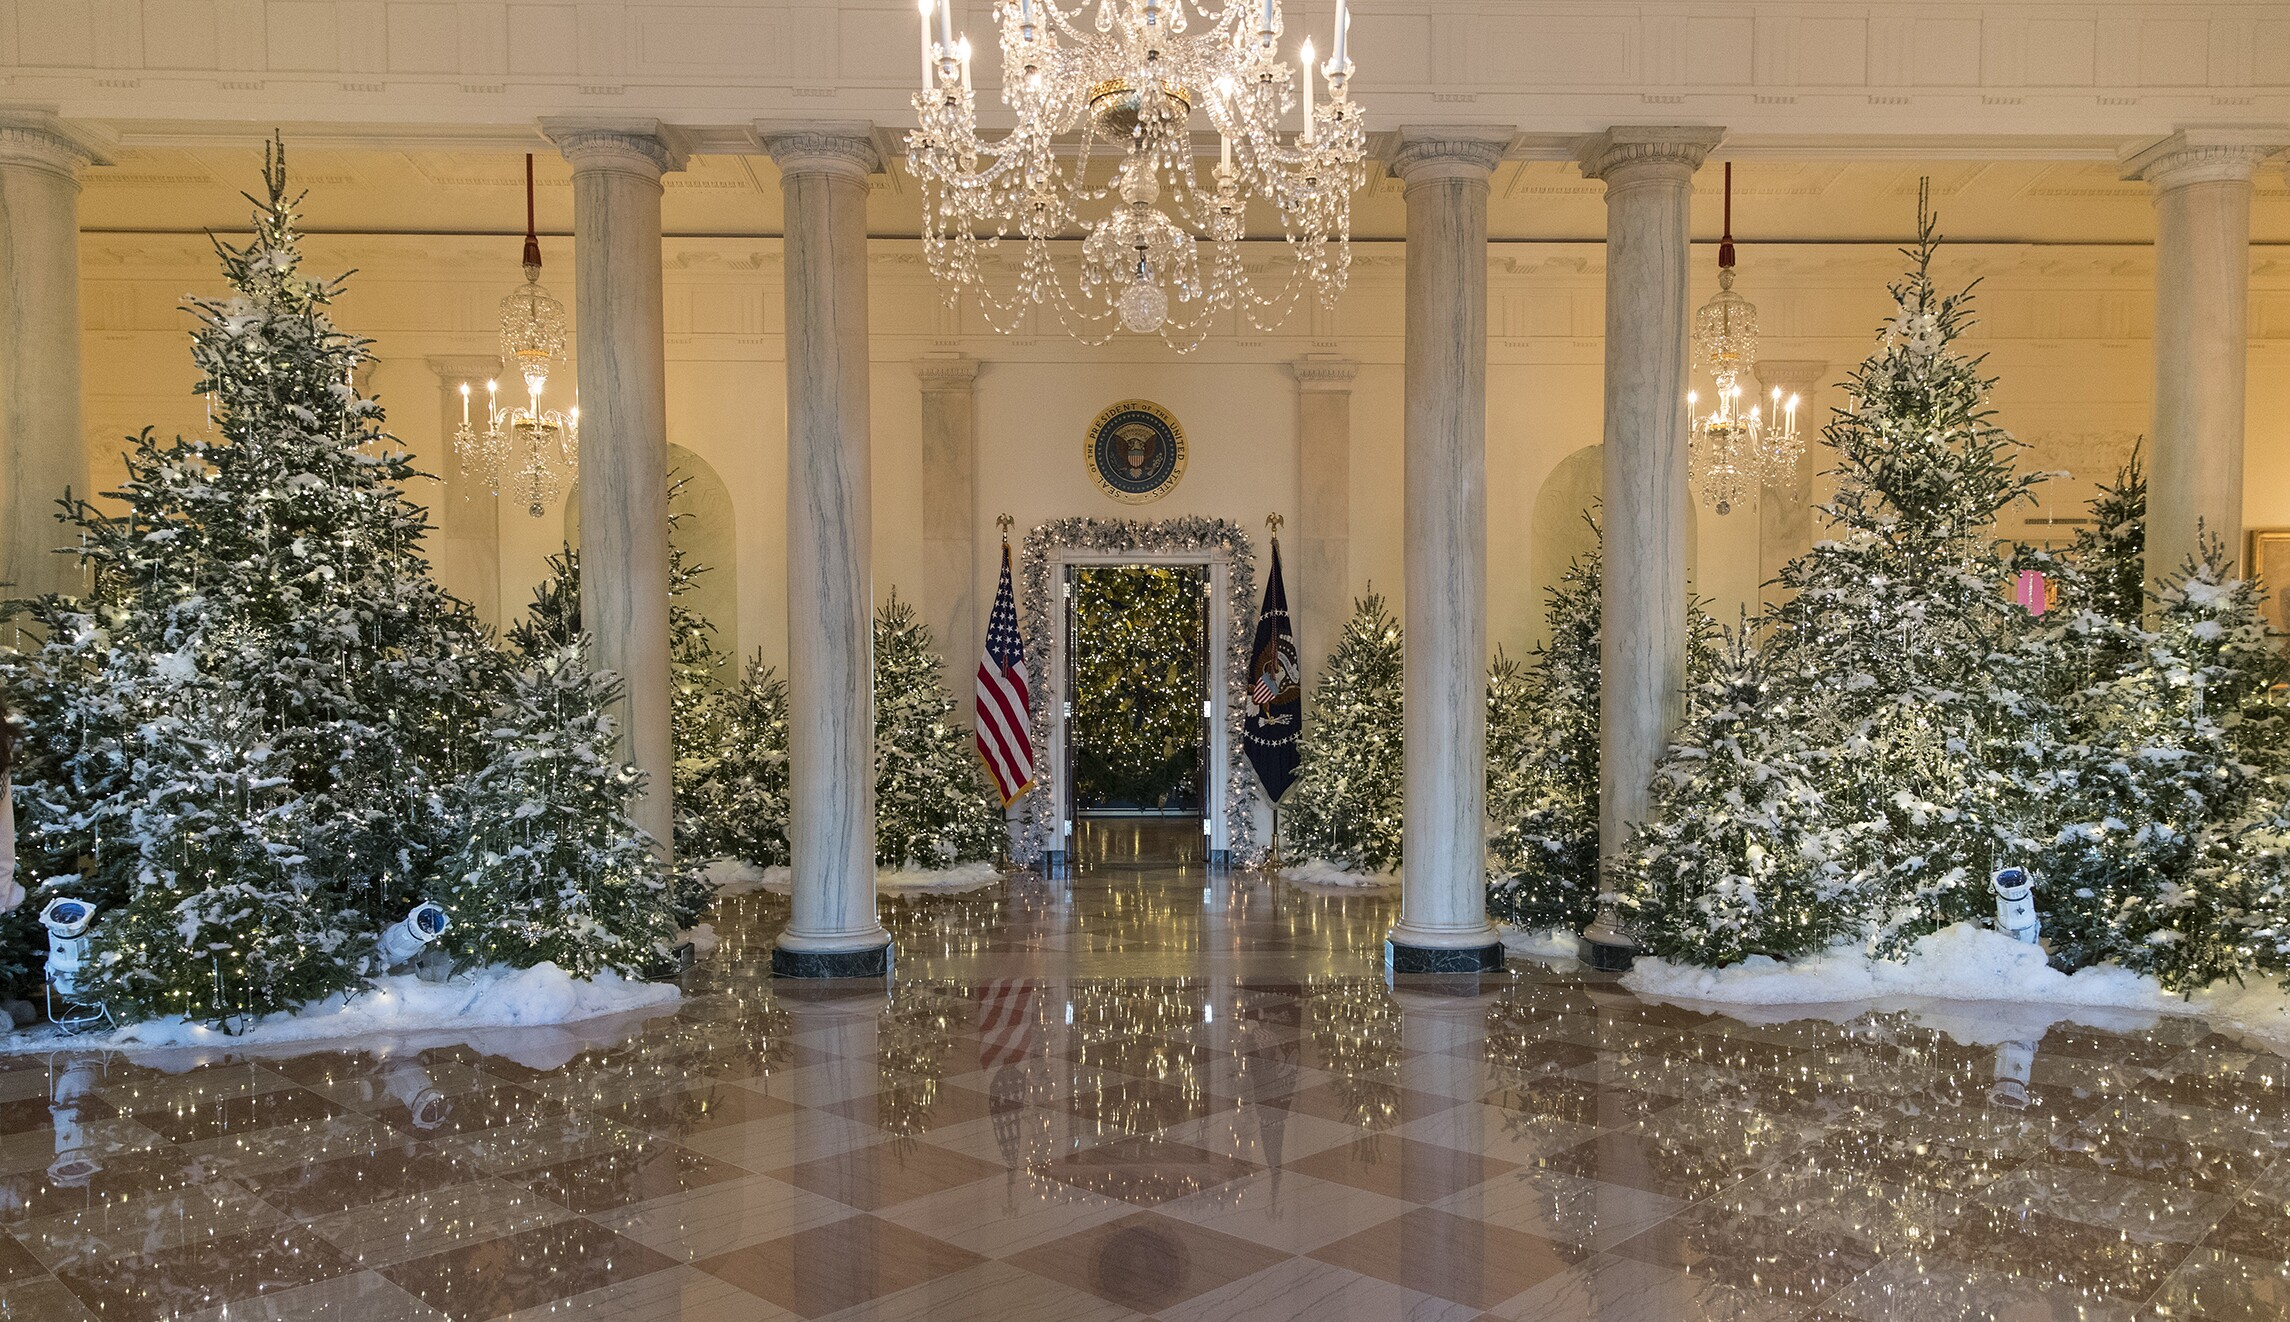 112717 giaritelli holiday decorations tradition pic - White House Christmas Decorations